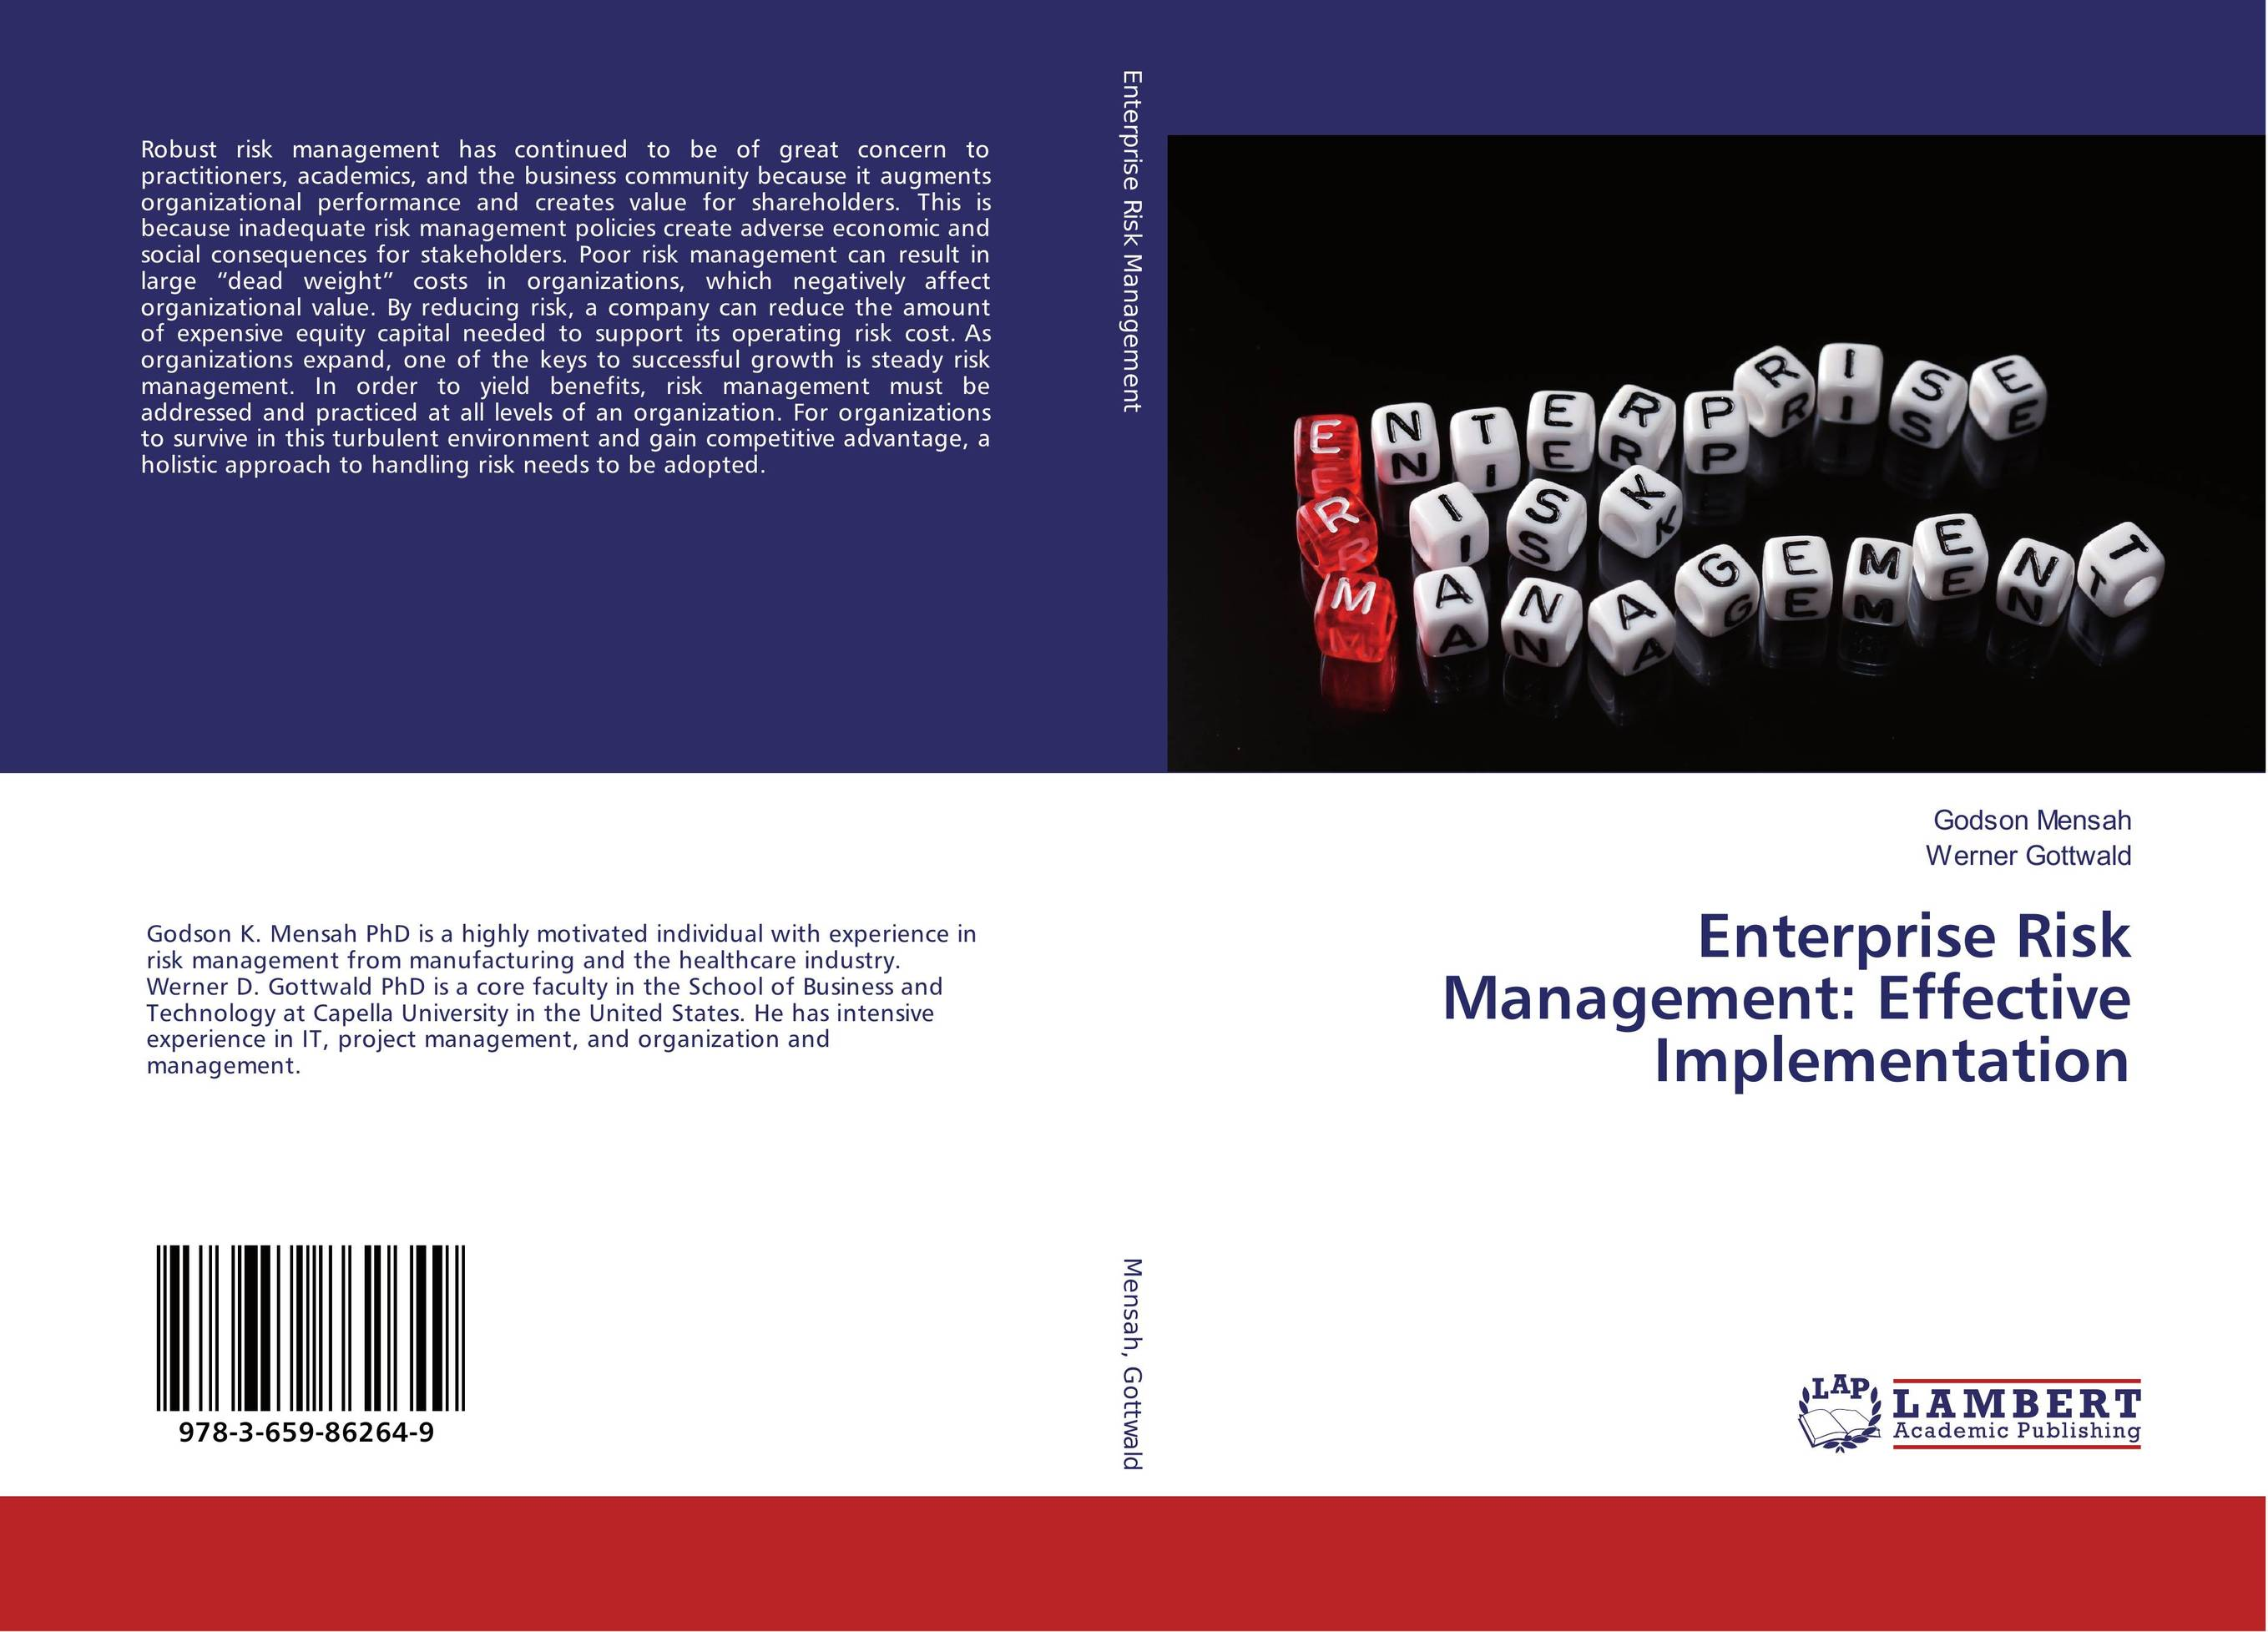 Enterprise Risk Management: Effective Implementation sim segal corporate value of enterprise risk management the next step in business management